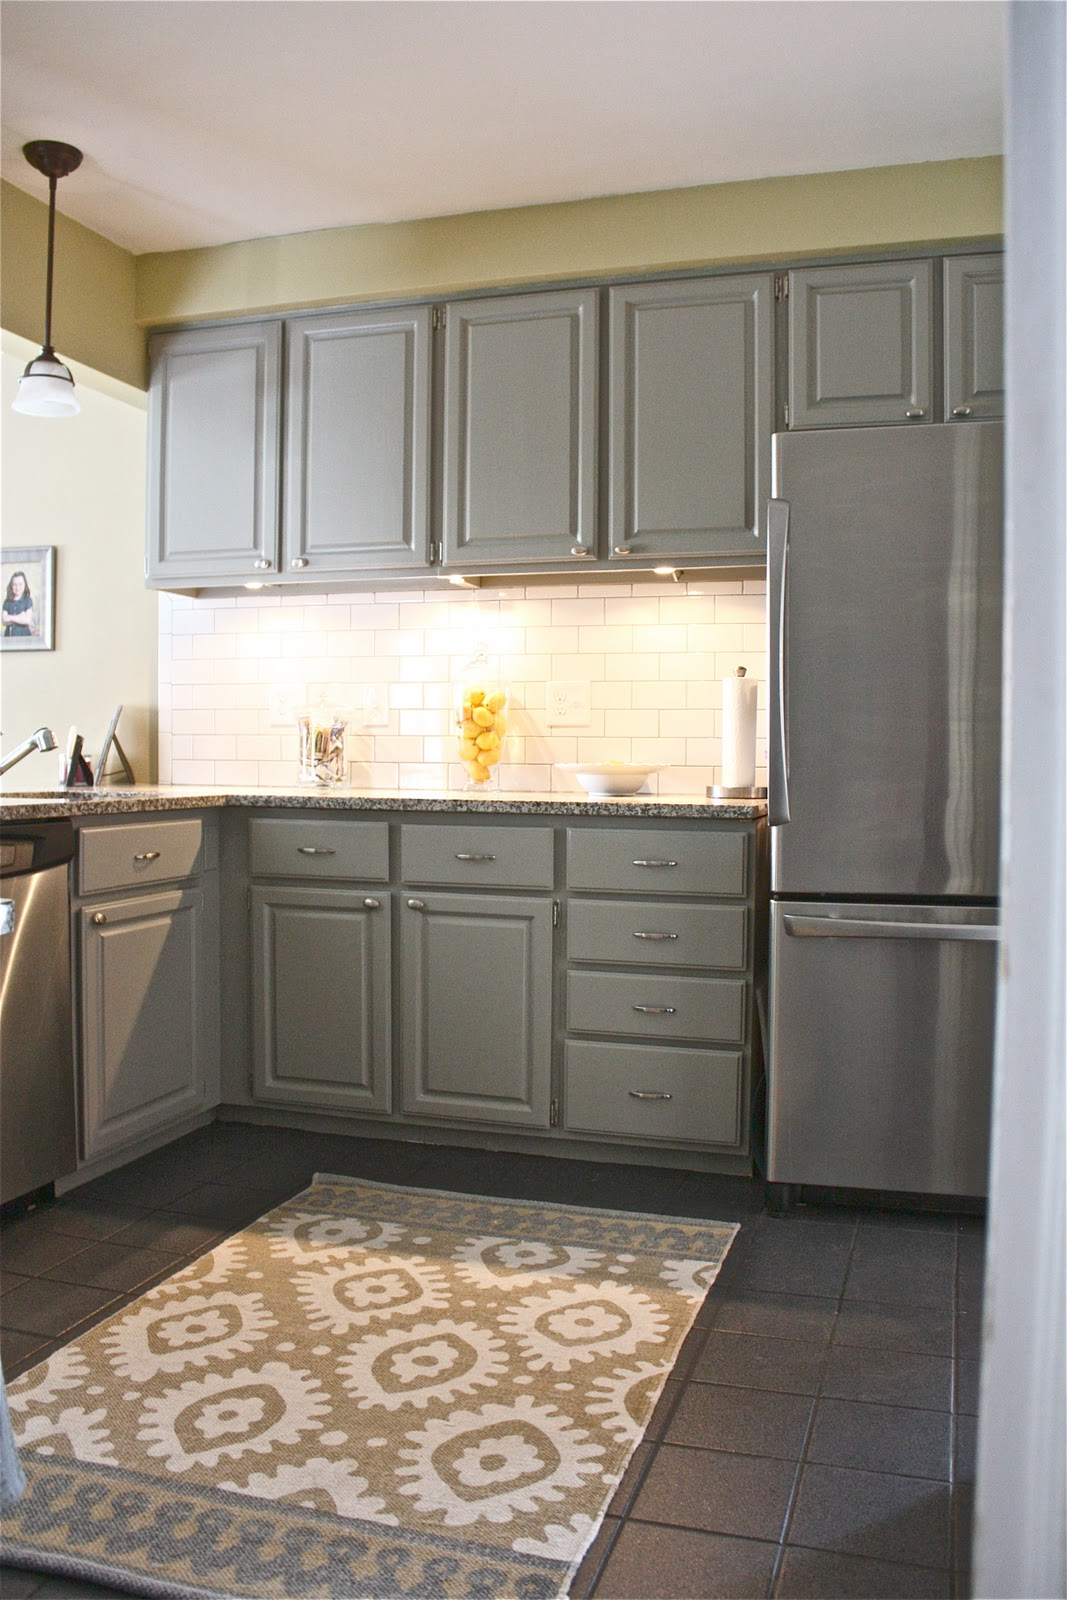 Gray Kitchen Cabinet The Thing That You Should Have HomesFeed - Backsplash for gray kitchen cabinets